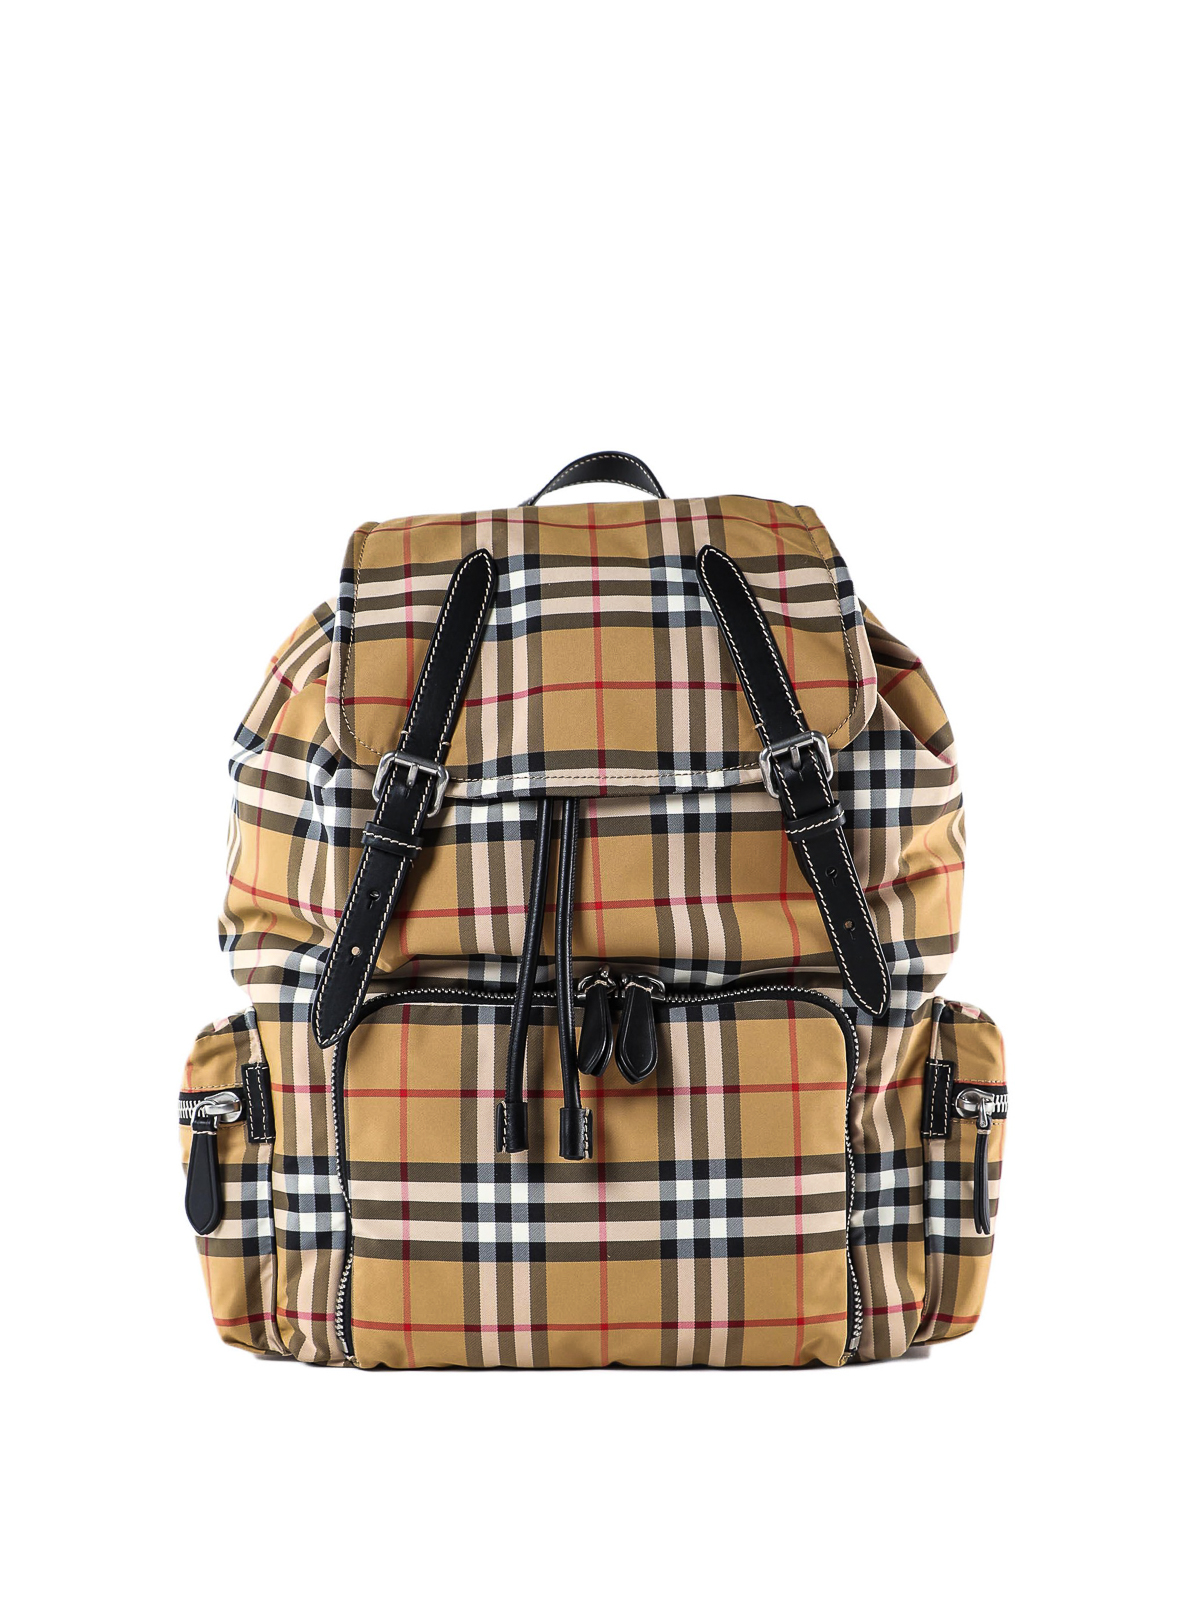 Burberry Leathers THE LARGE RUCKSACK VINTAGE CHECK BACKPACK